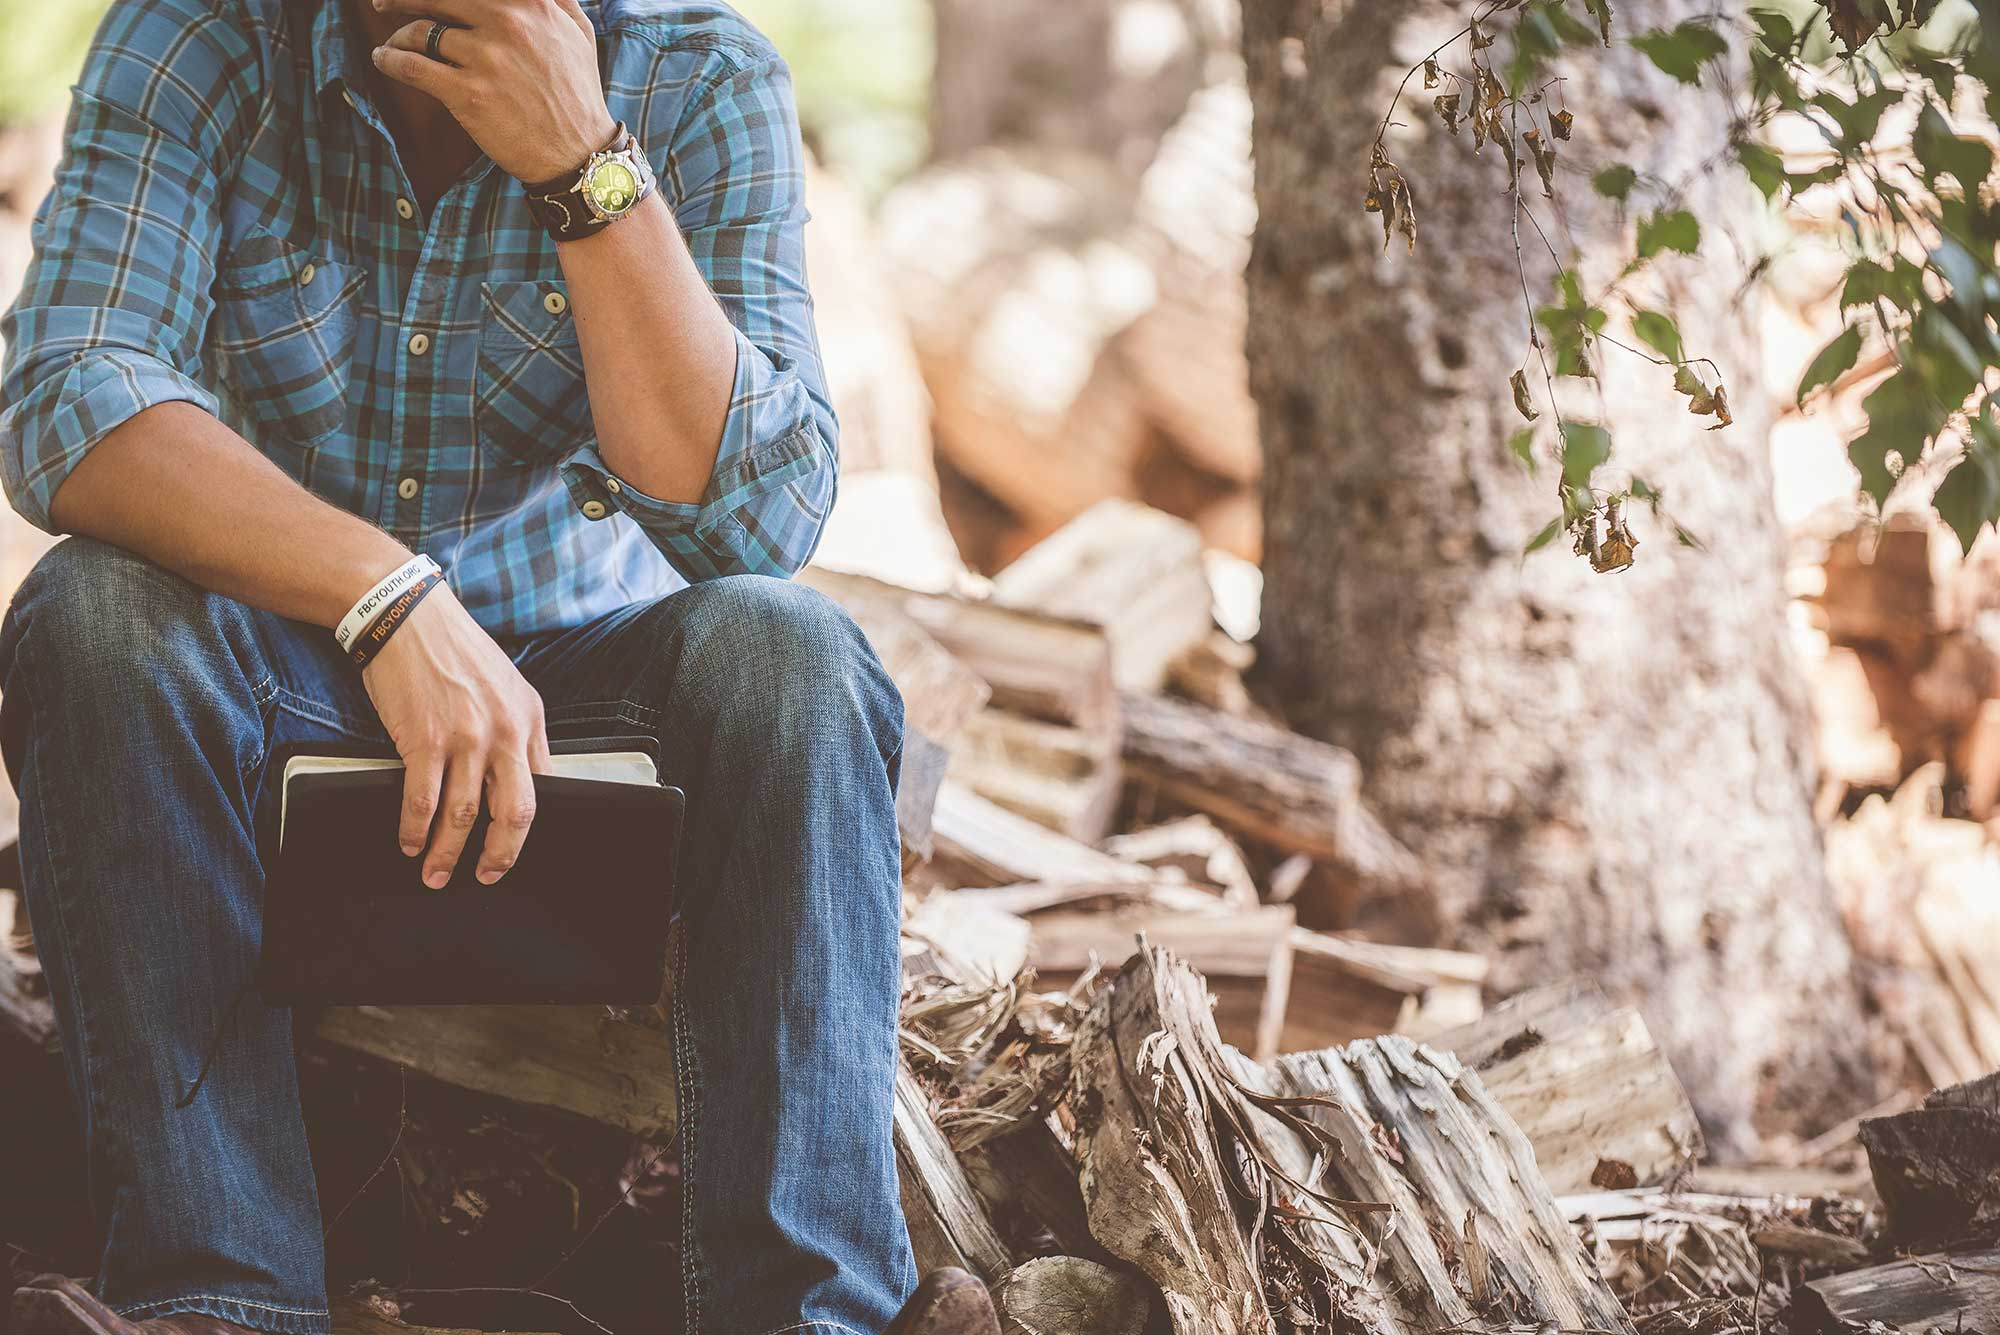 Man sitting on a log with a book in his hands